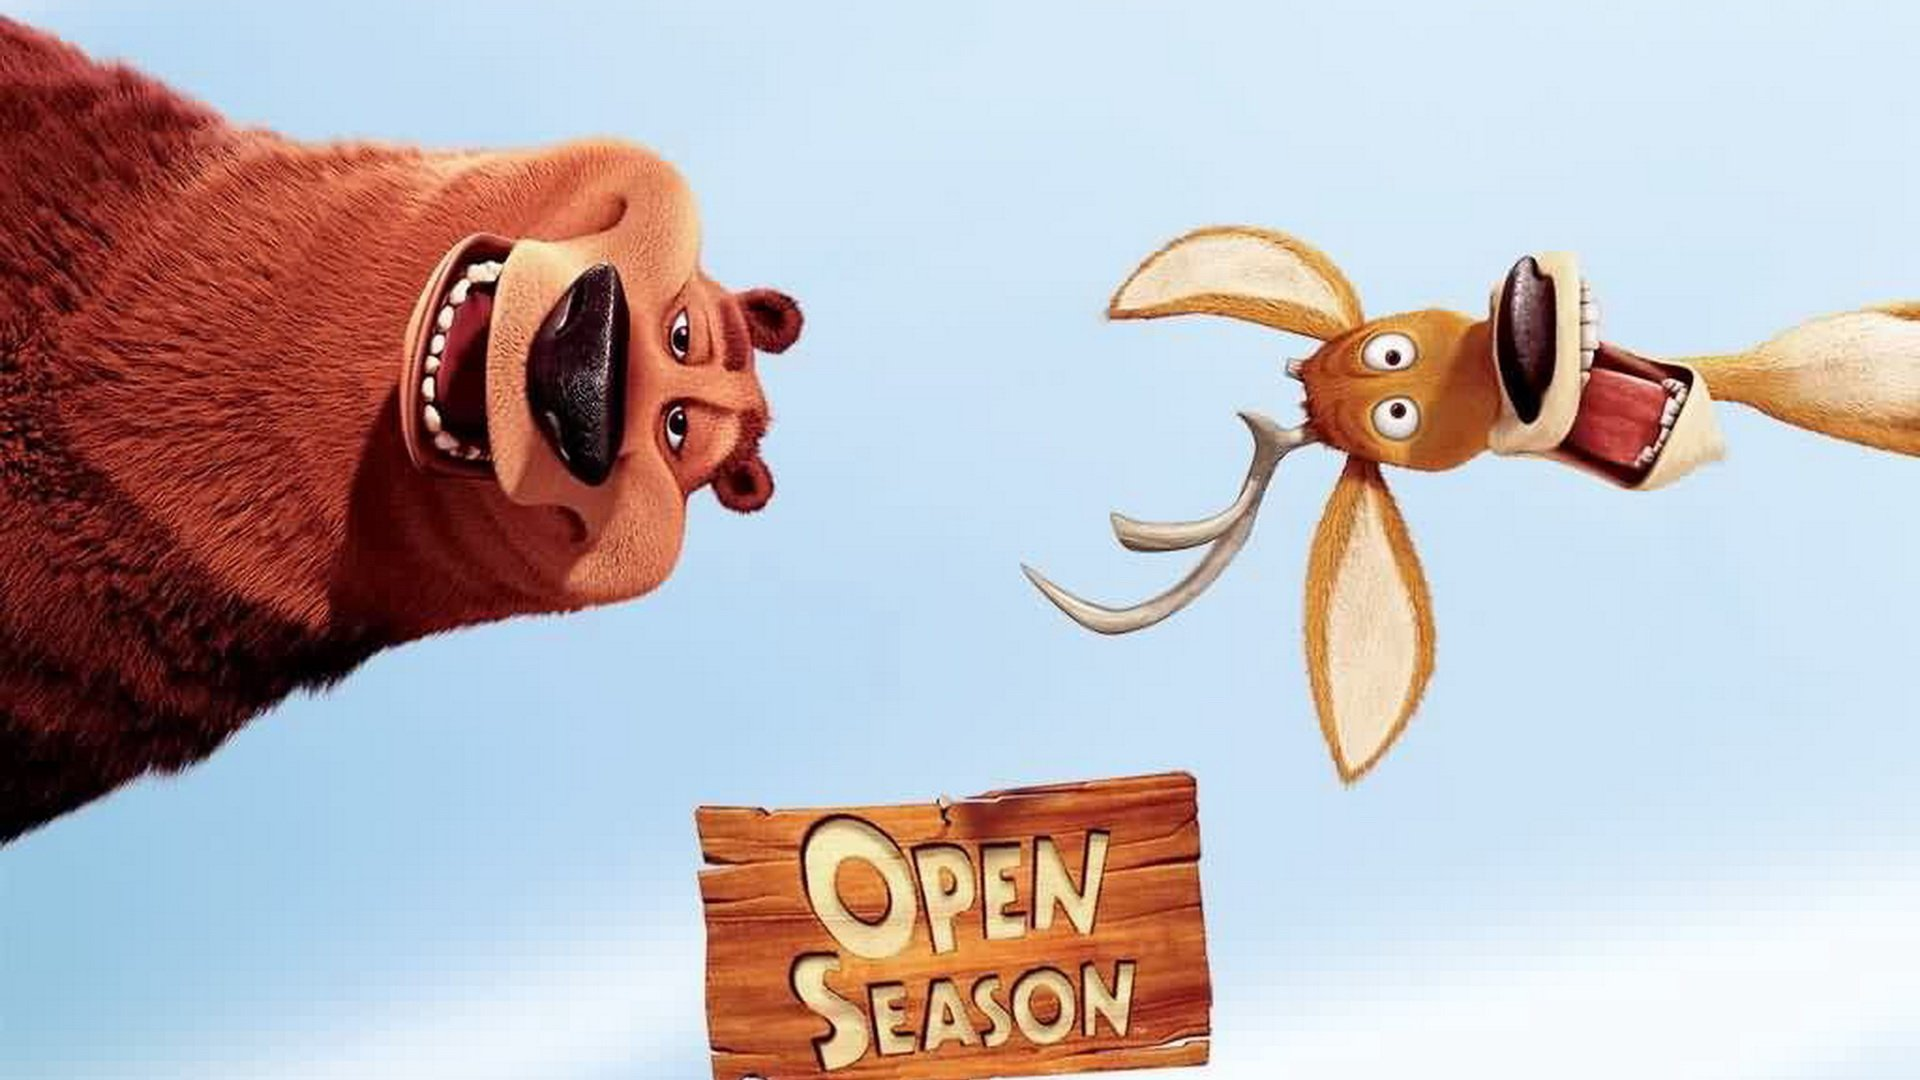 4 Open Season Hd Wallpapers Background Images Wallpaper Abyss